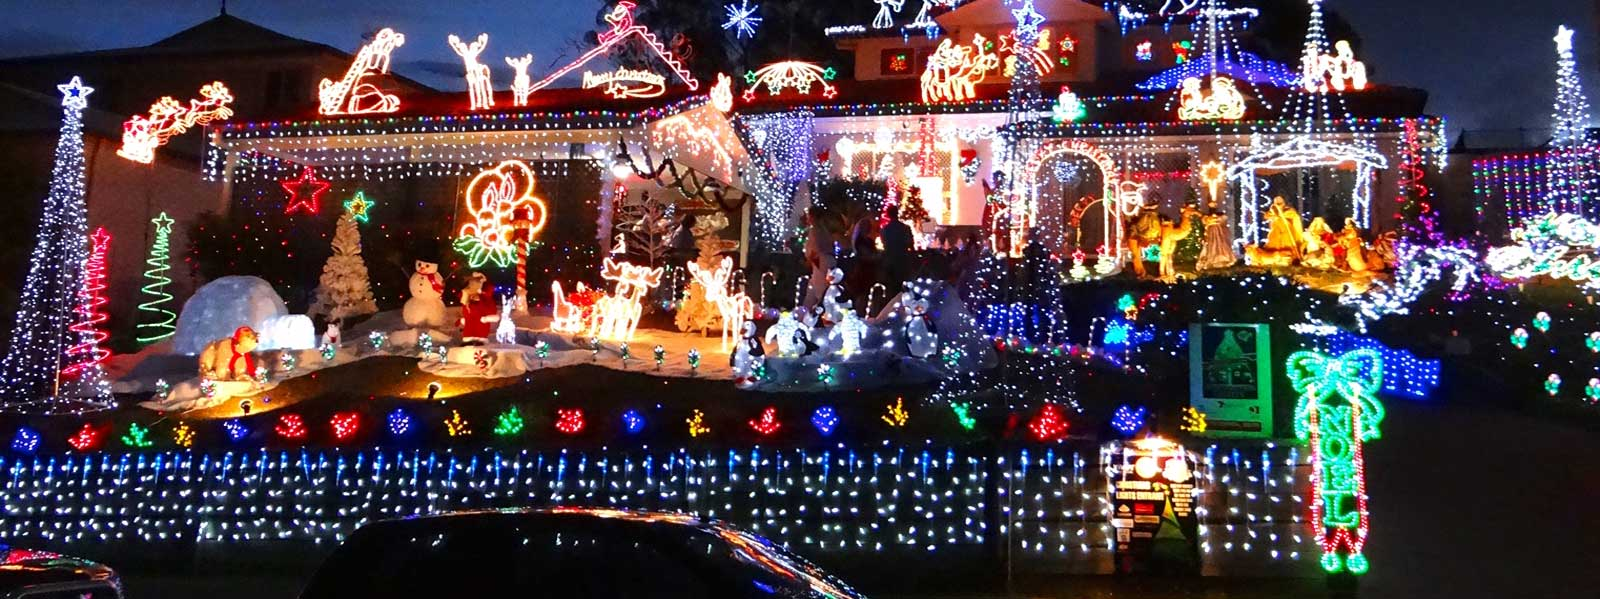 Commercial christmas decorations outdoor - Amazing Indoor Outdoor Lighting Displays